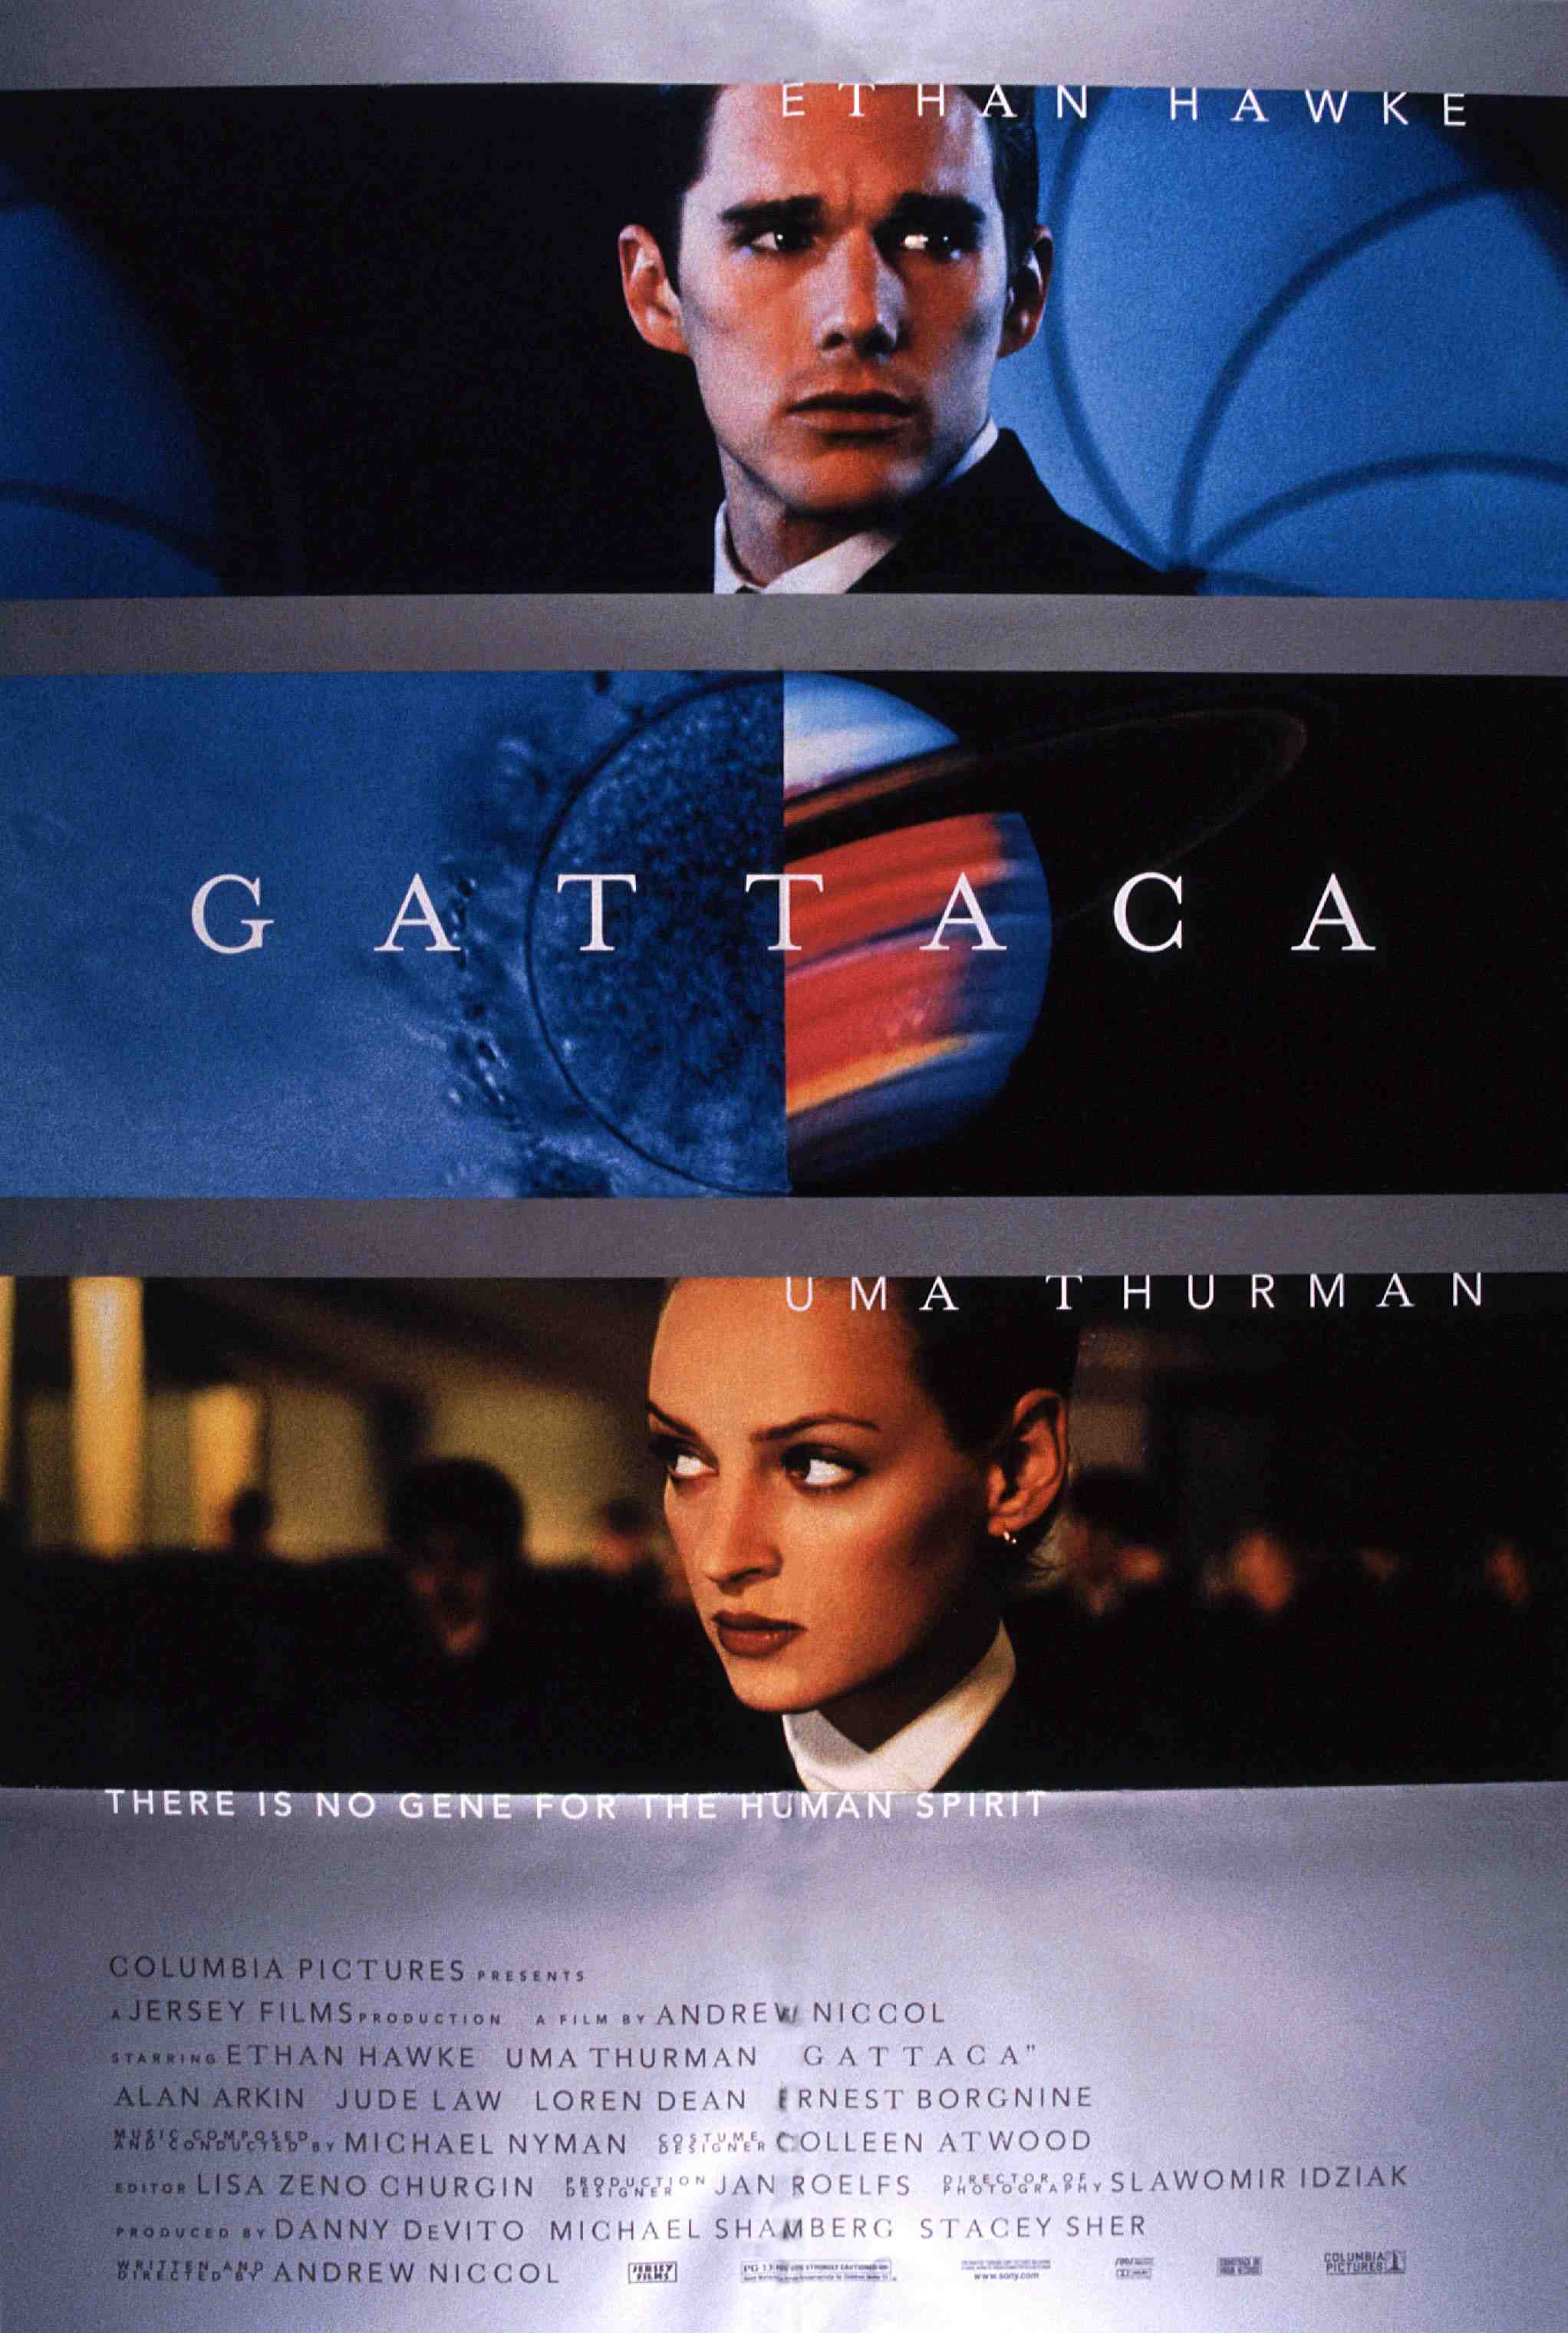 746522f5f865 NYT asks which sci-fi work is most prescient today: I think GATTACA ...